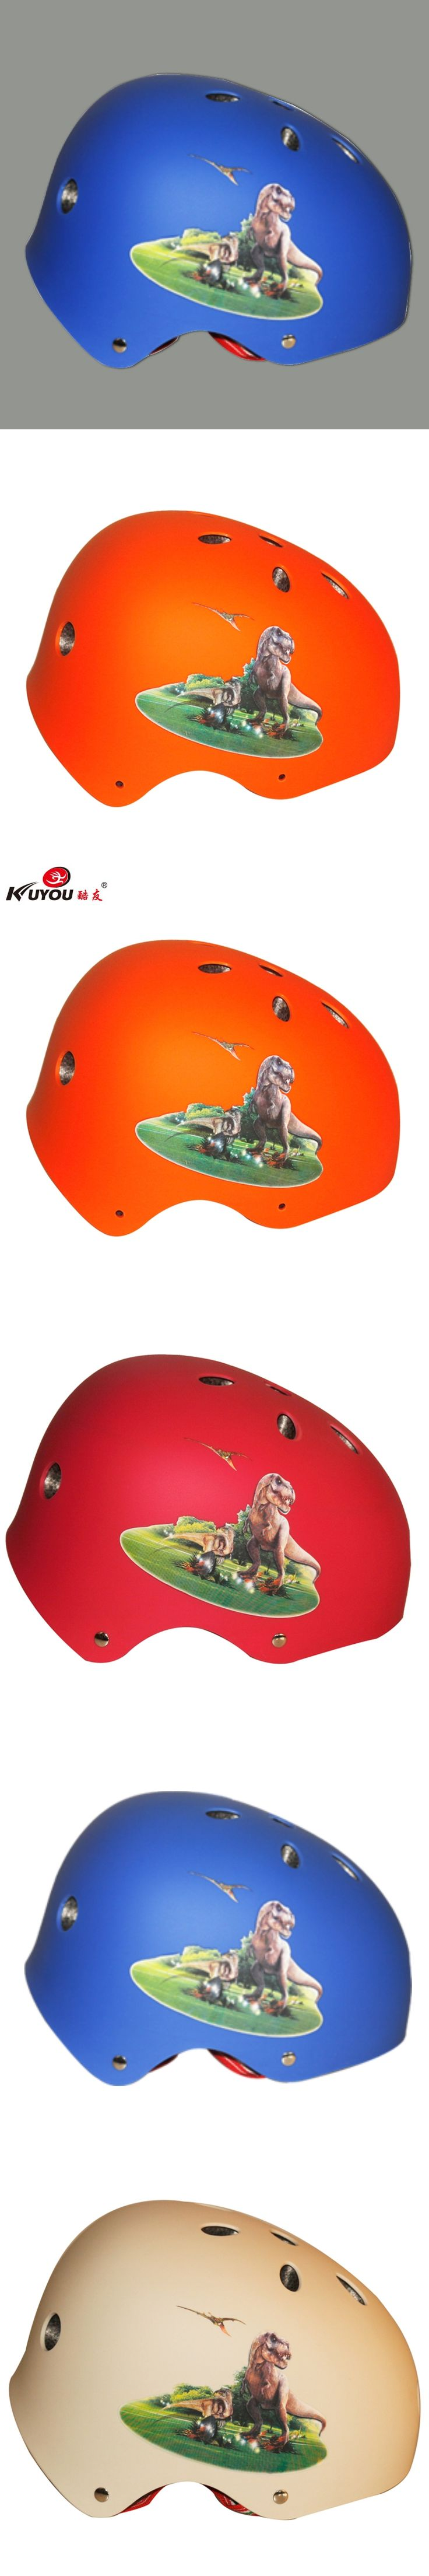 Cycling Helmet  Skateboard Non integral forming rock climbing Sport Helmet   for Children Skating  Casco Ciclismo Bicycle Helmet